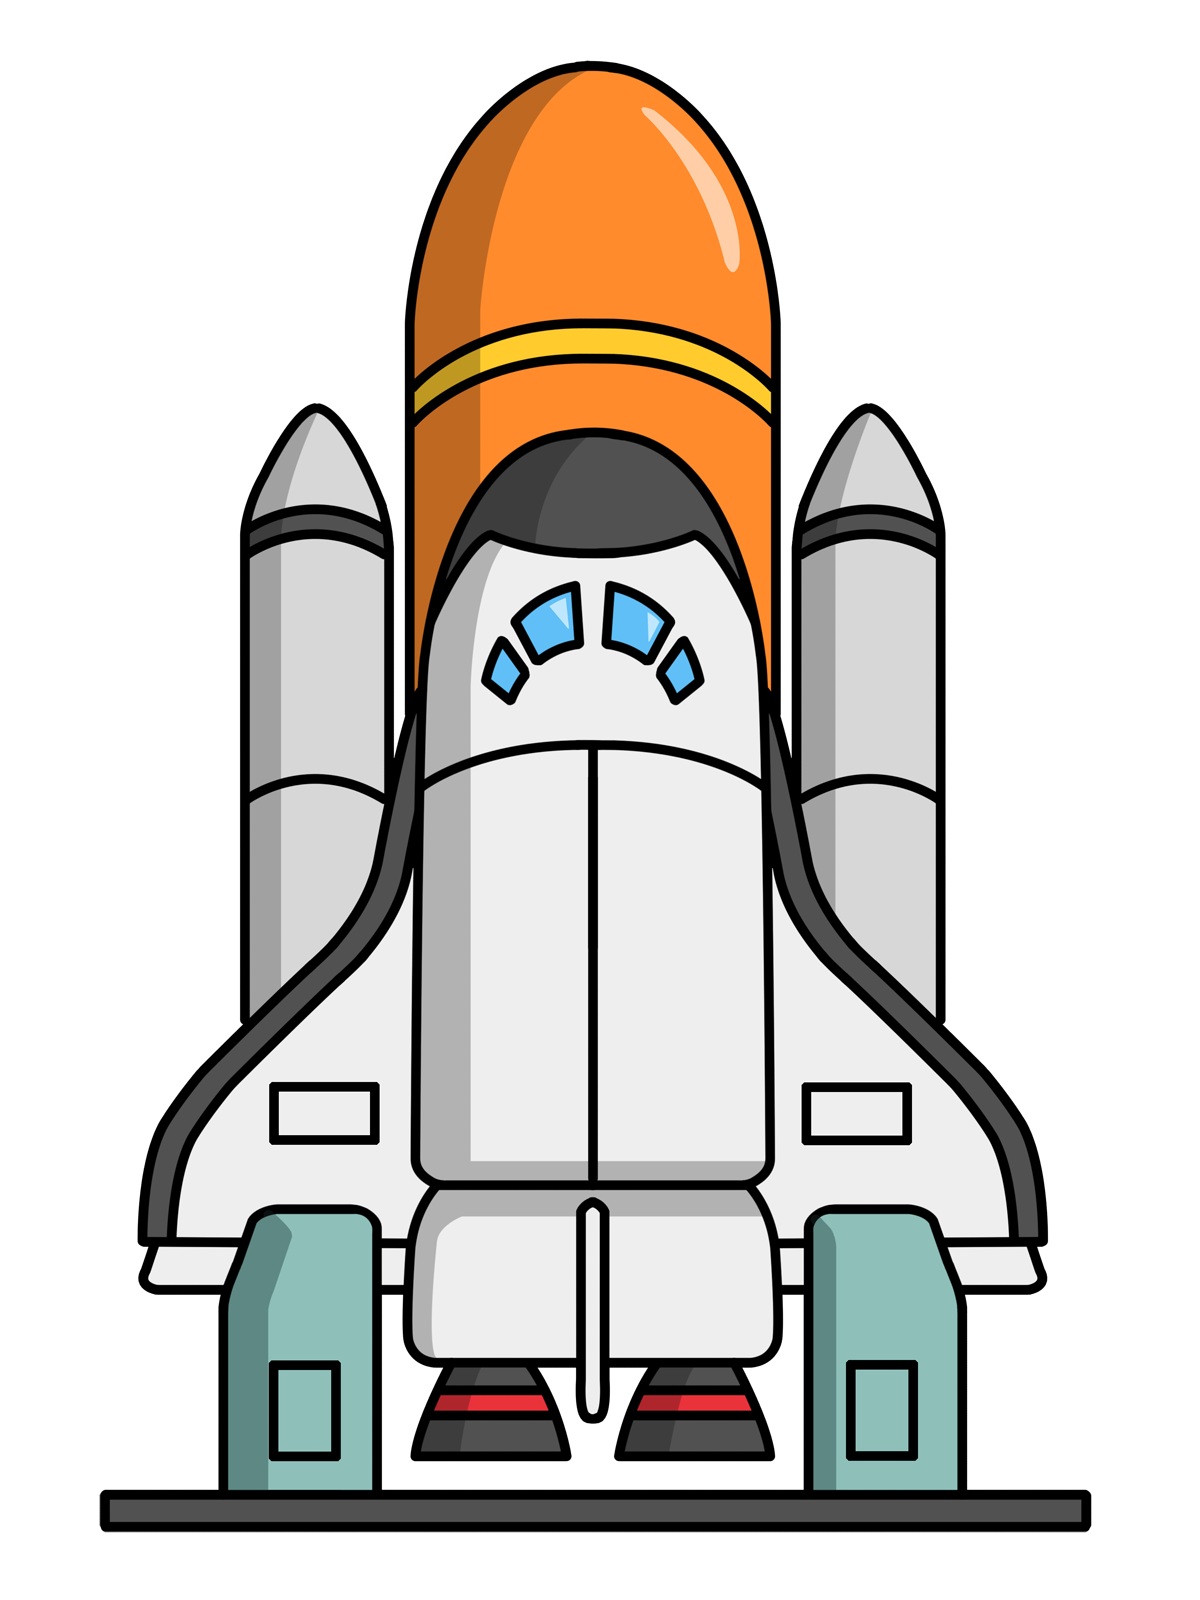 Space shuttle desktop clipart.